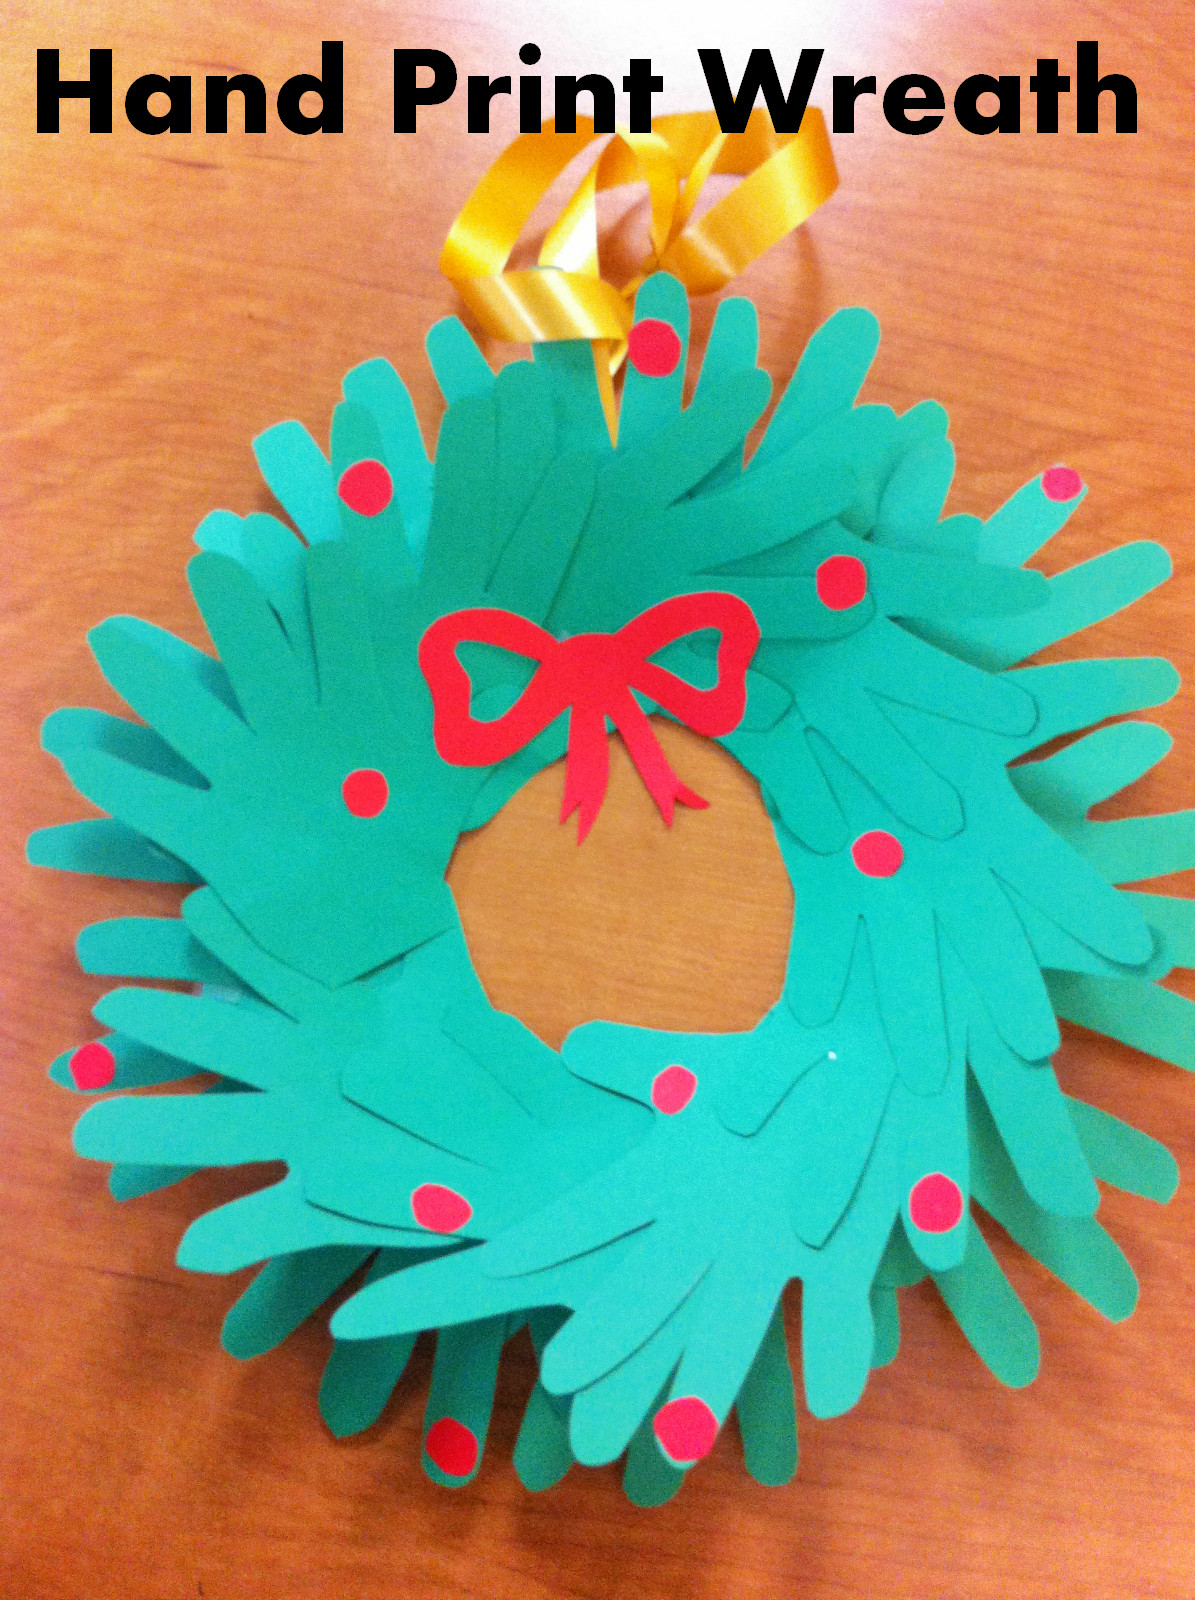 Paper christmas decorations to print - Christmas Craft For Kids Hand Print Wreath